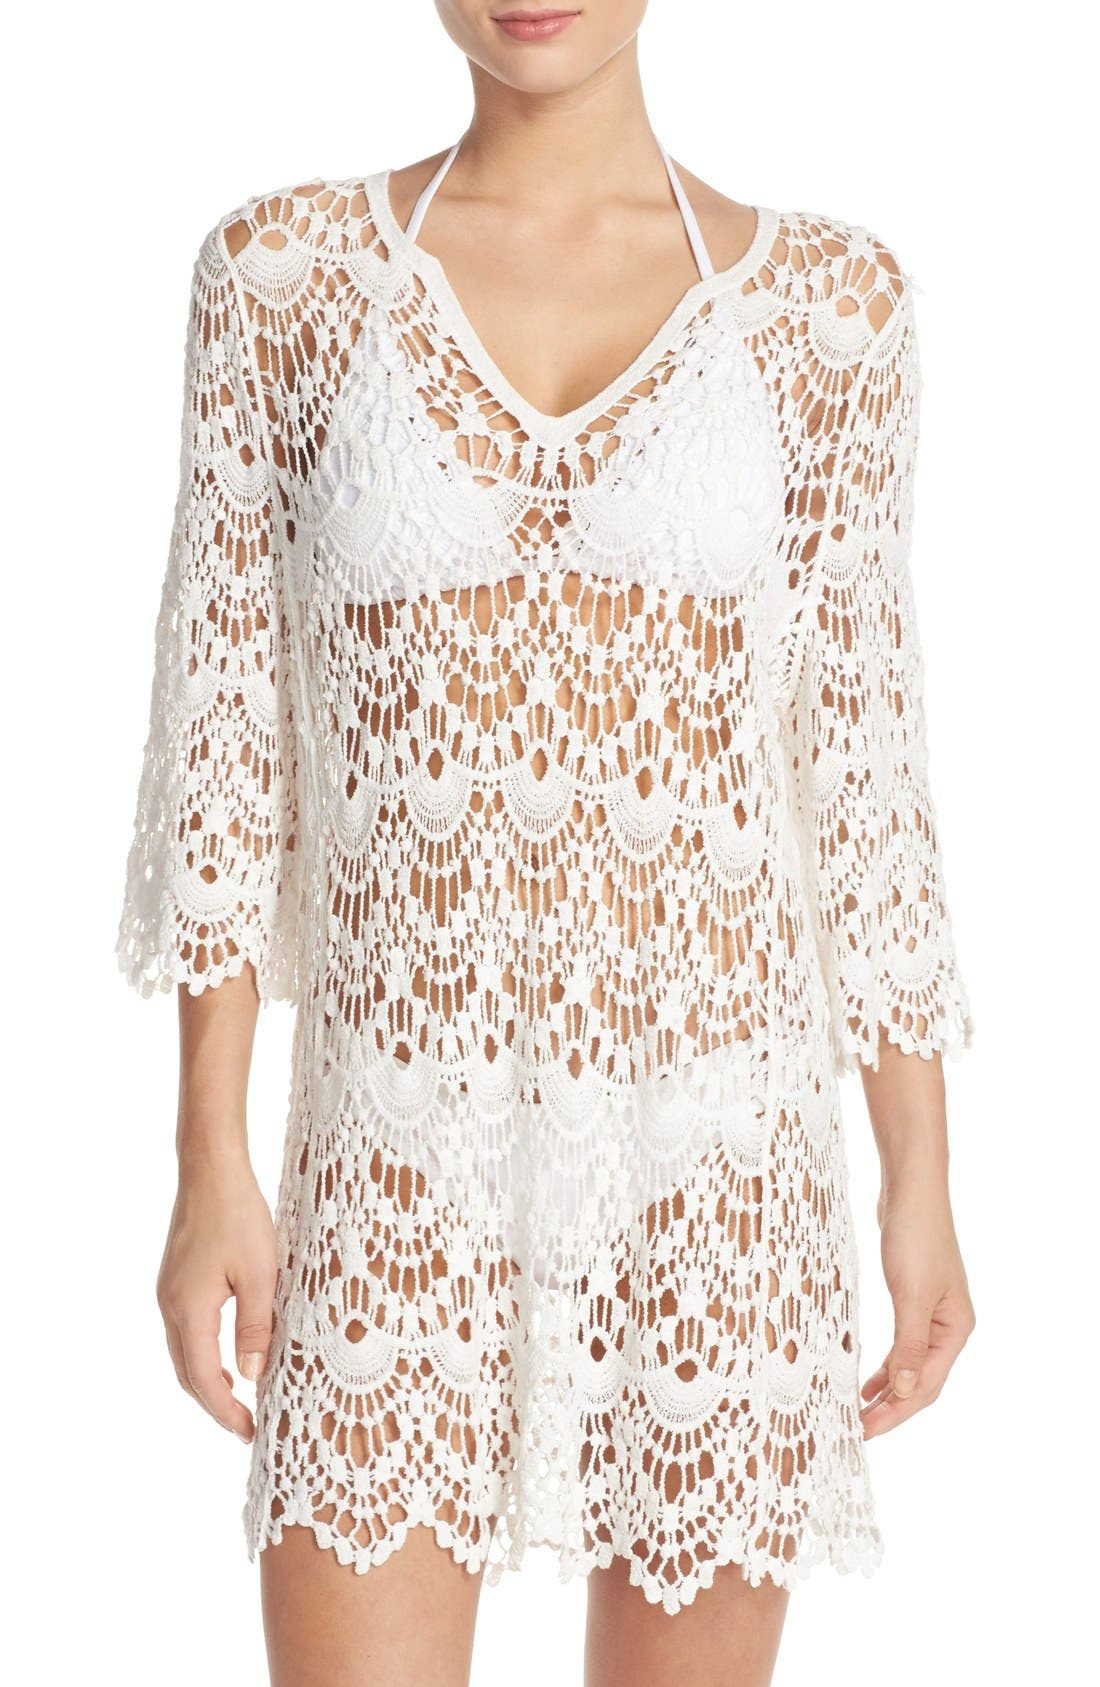 Alternate Image 1 Selected - Surf Gypsy Crochet Cover-Up Tunic